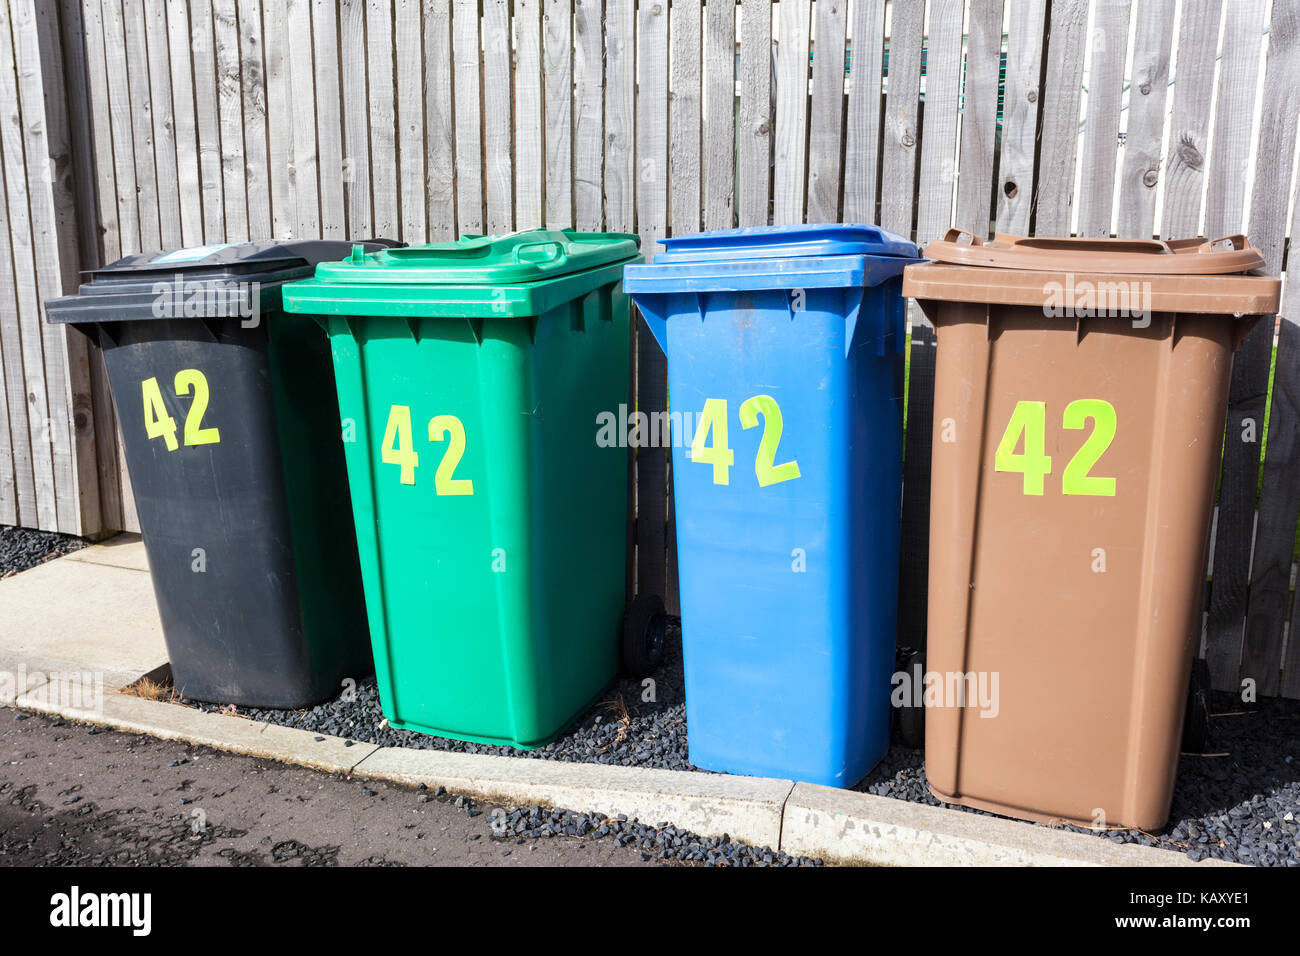 Four full sized recycling wheelie bins for one property at Anstruther, Fife, Scotland UK Stock Photo